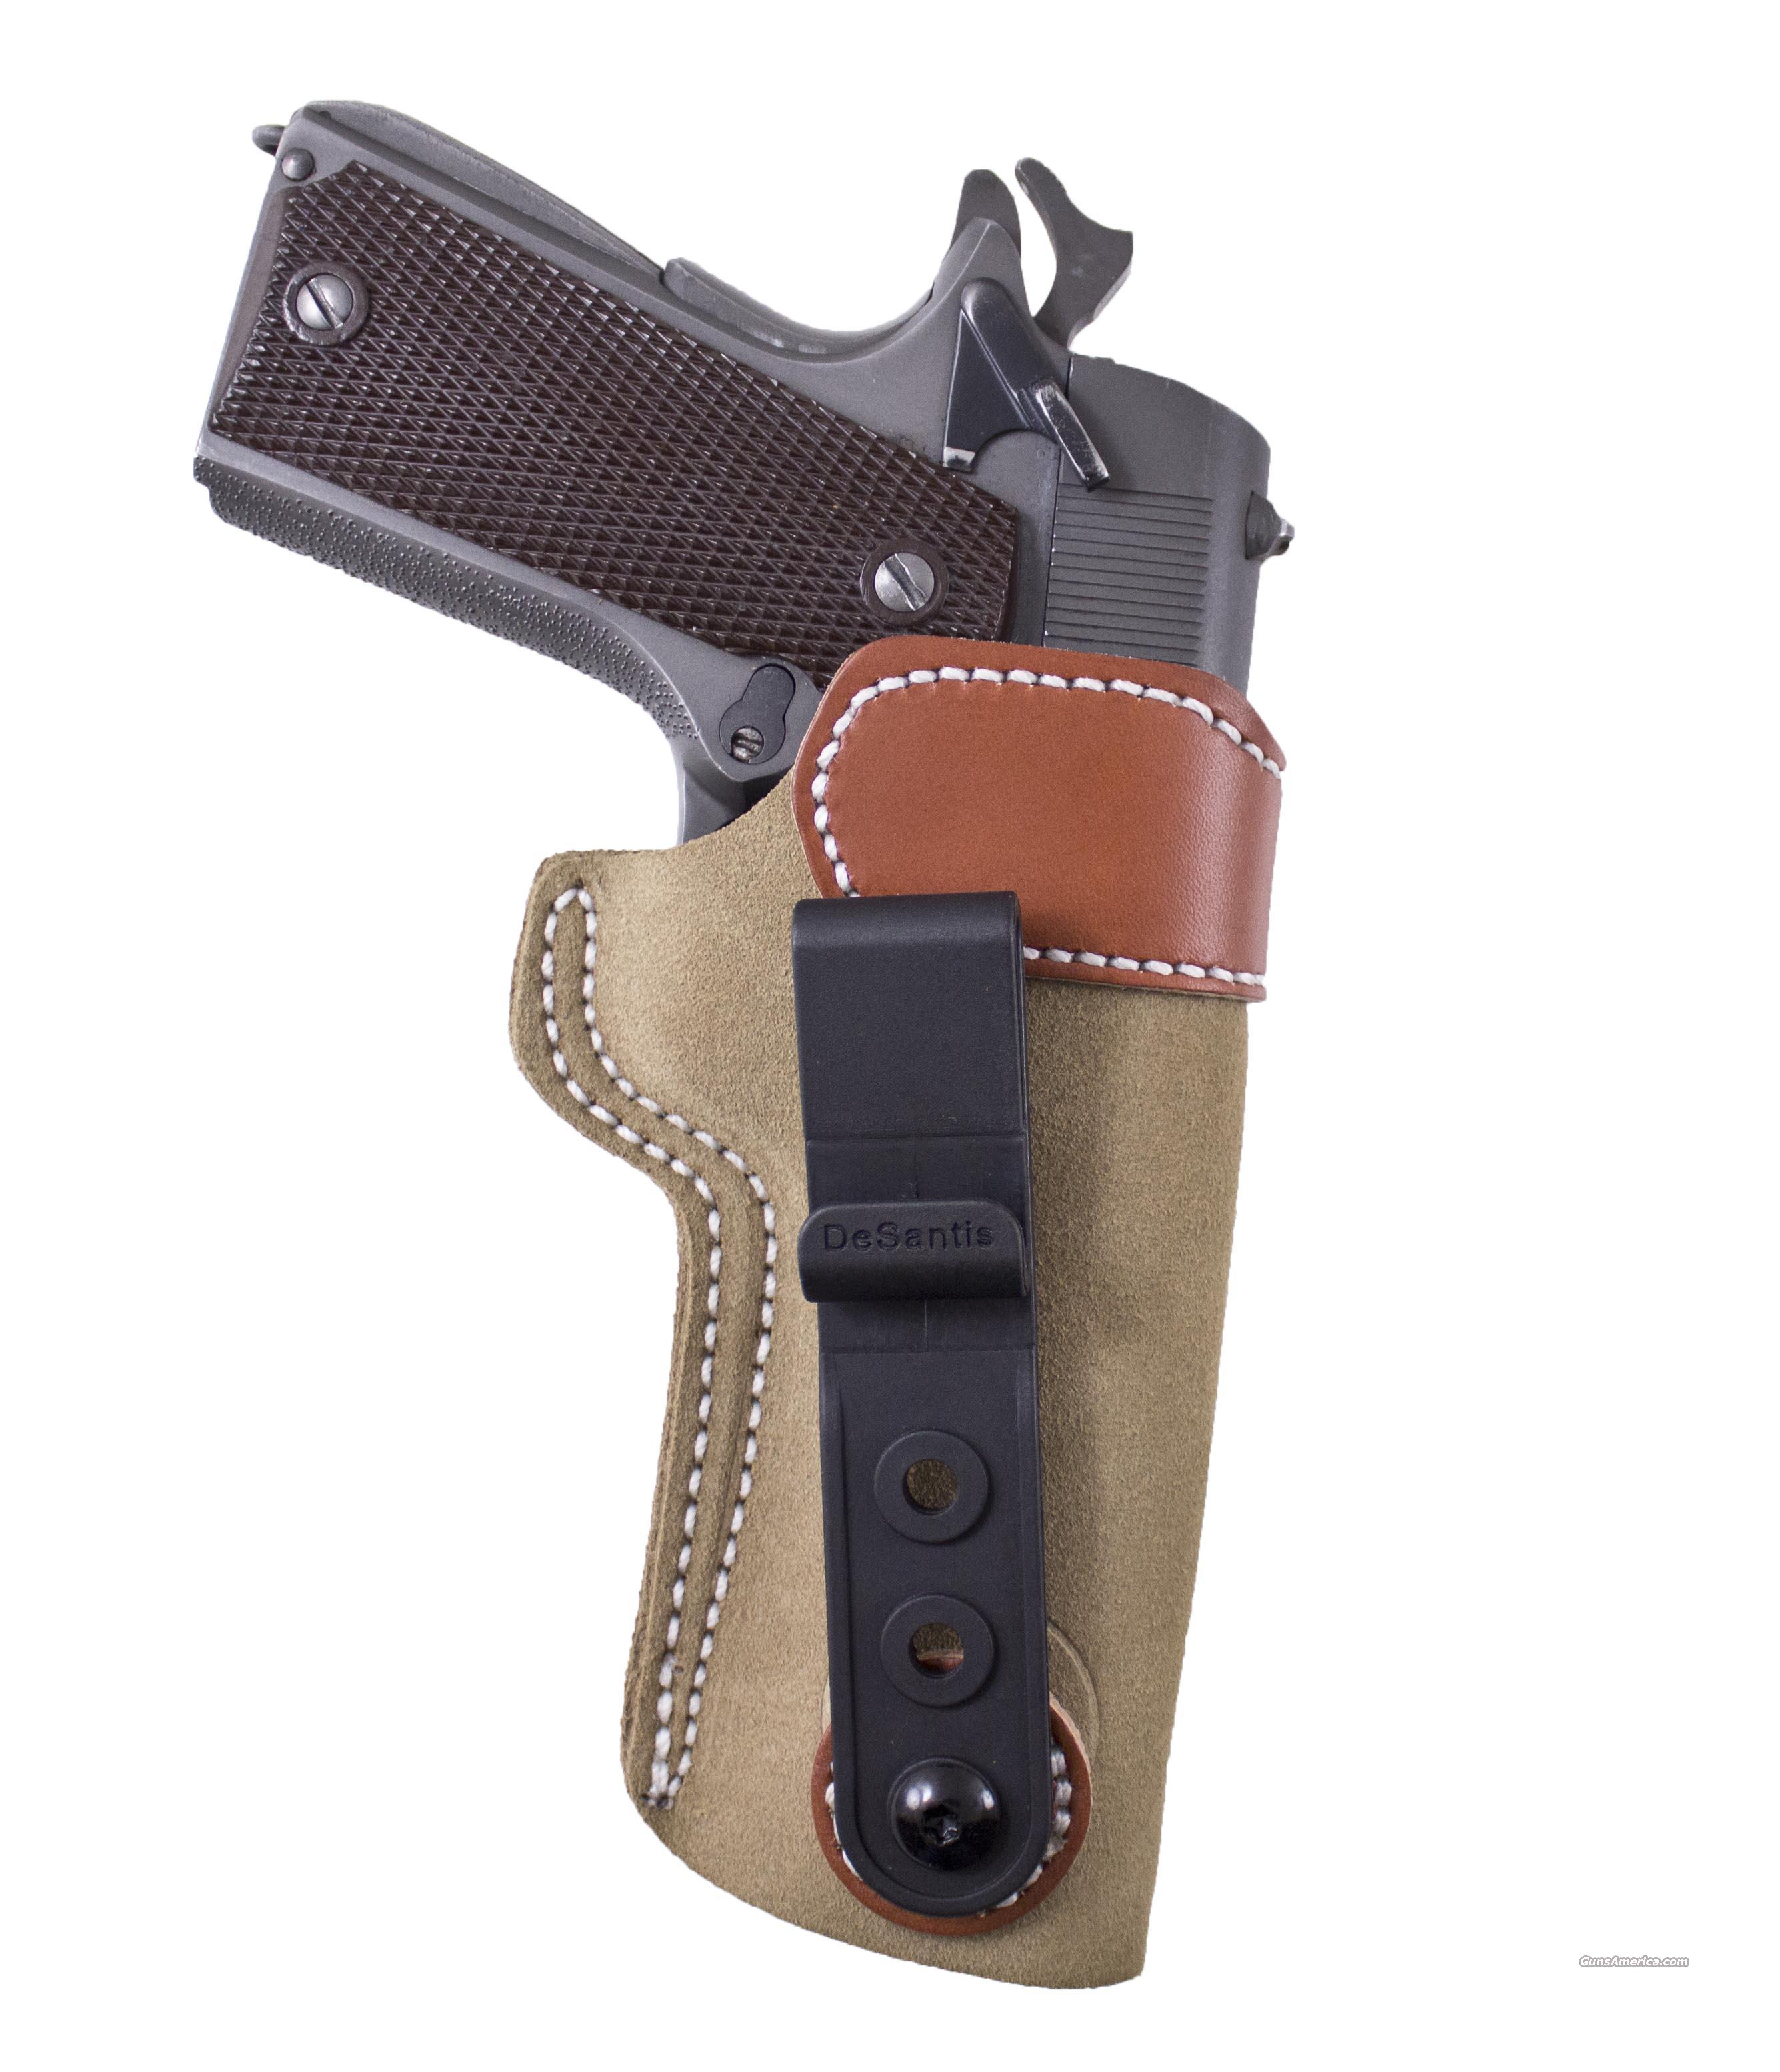 DeSantis Sof-Tuck IWB Inside Pants / Waistband Holster Browning P35					 Zoom InZoom Out Have one to sell?Sell it yourself 	 	 DeSantis Sof-Tuck IWB Inside Pants / Waistband Holster Colt Commander,  Government  Non-Guns > Holsters and Gunleather > Concealed Carry